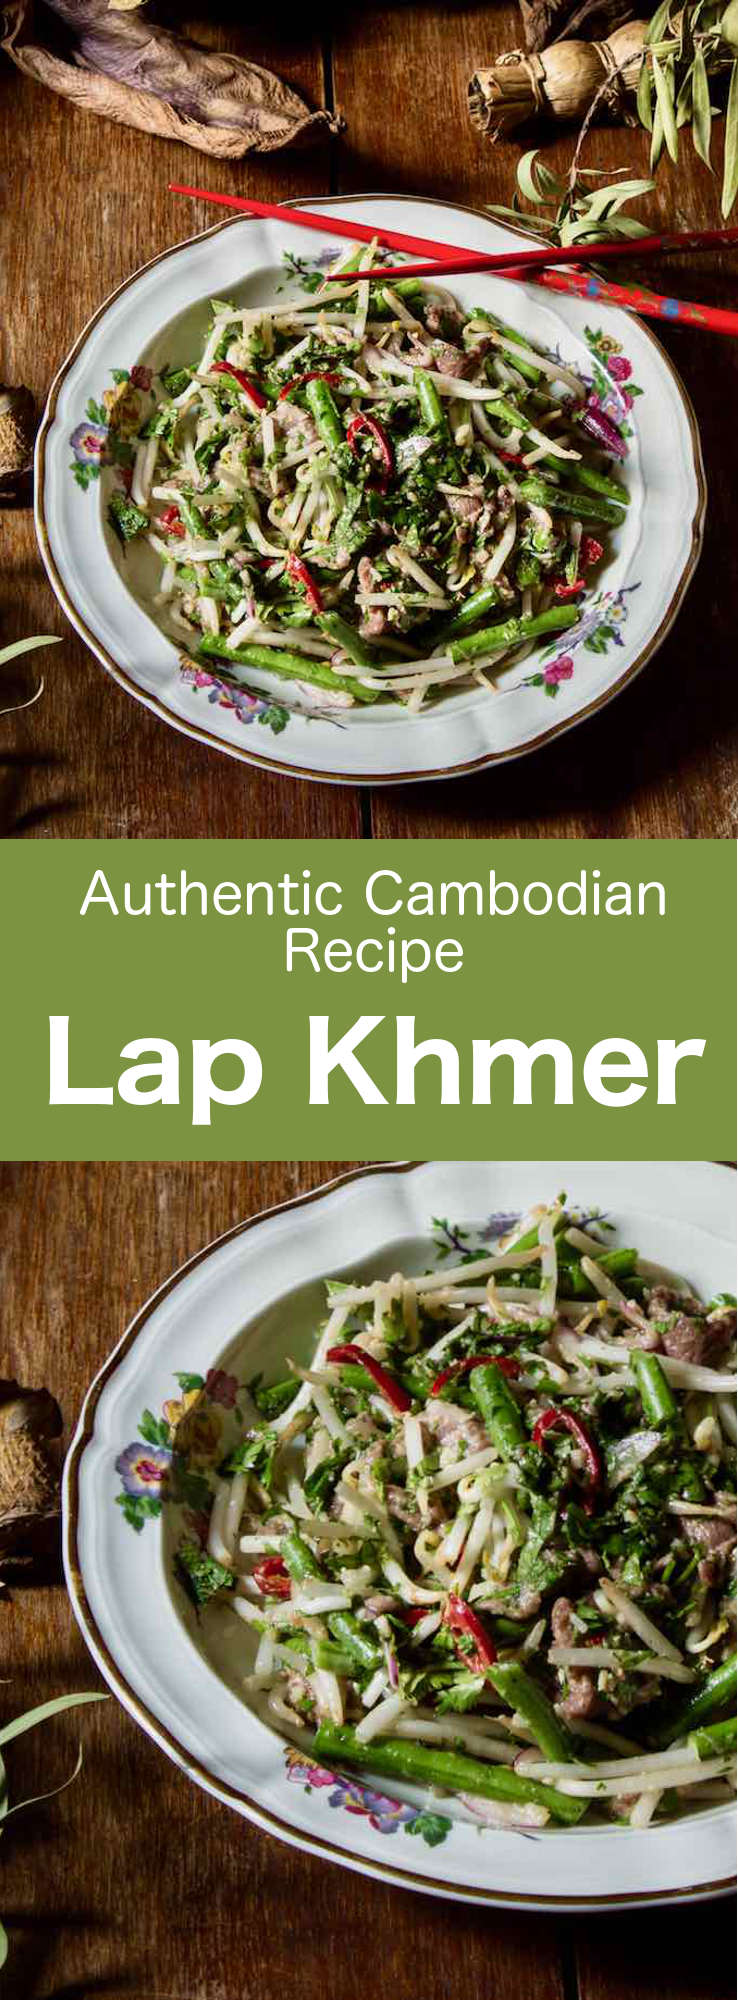 Lap khmer is a delicious traditional Cambodian salad prepared with thinly sliced marinated beef that is served with raw vegetables and herbs. #Cambodian #CambodianRecipe #CambodianCuisine #AsianCuisine #AsianRecipe #WorldCuisine #196flavors